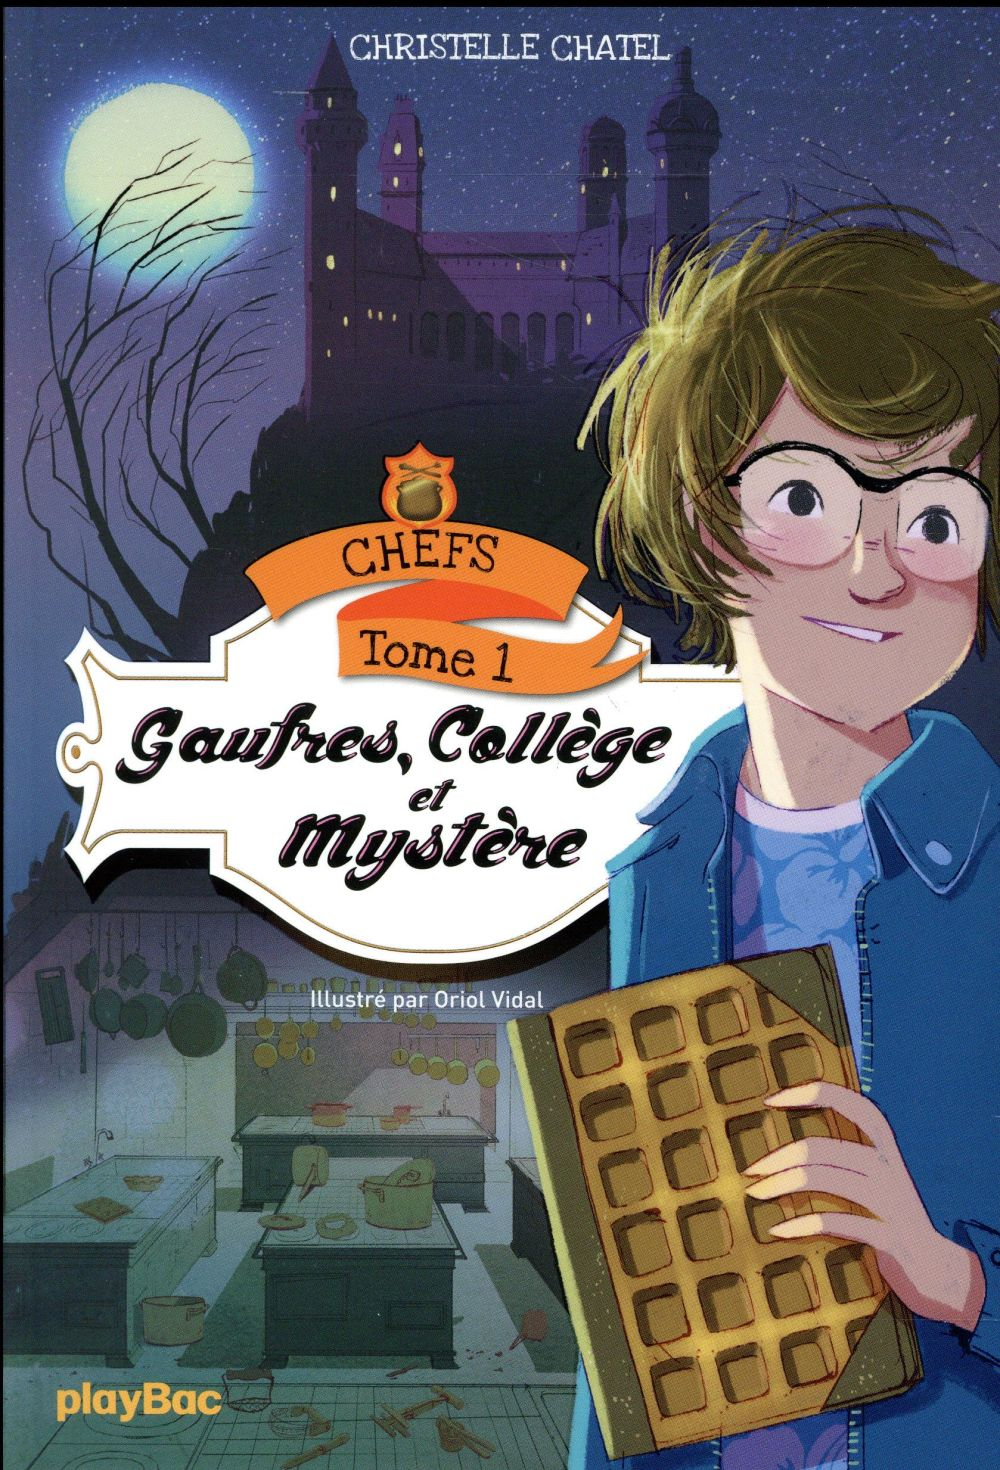 CHEFS - GAUFRES, COLLEGE ET MYSTERE - TOME 1 Chatel Christelle Play Bac